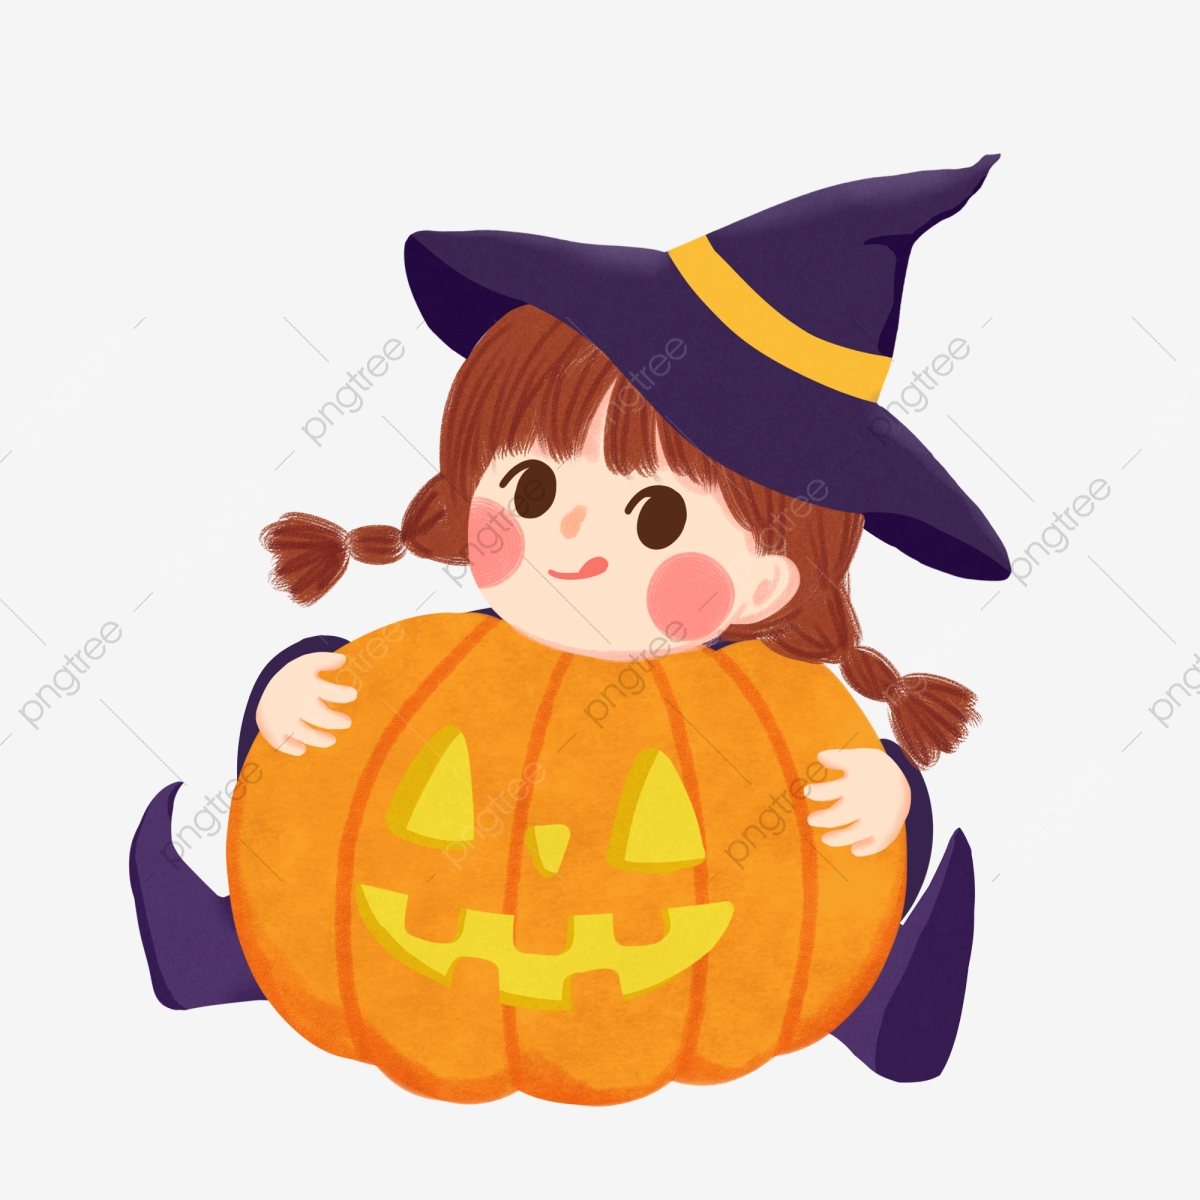 conception mignonne de sorci u00e8re halloween reste mignon